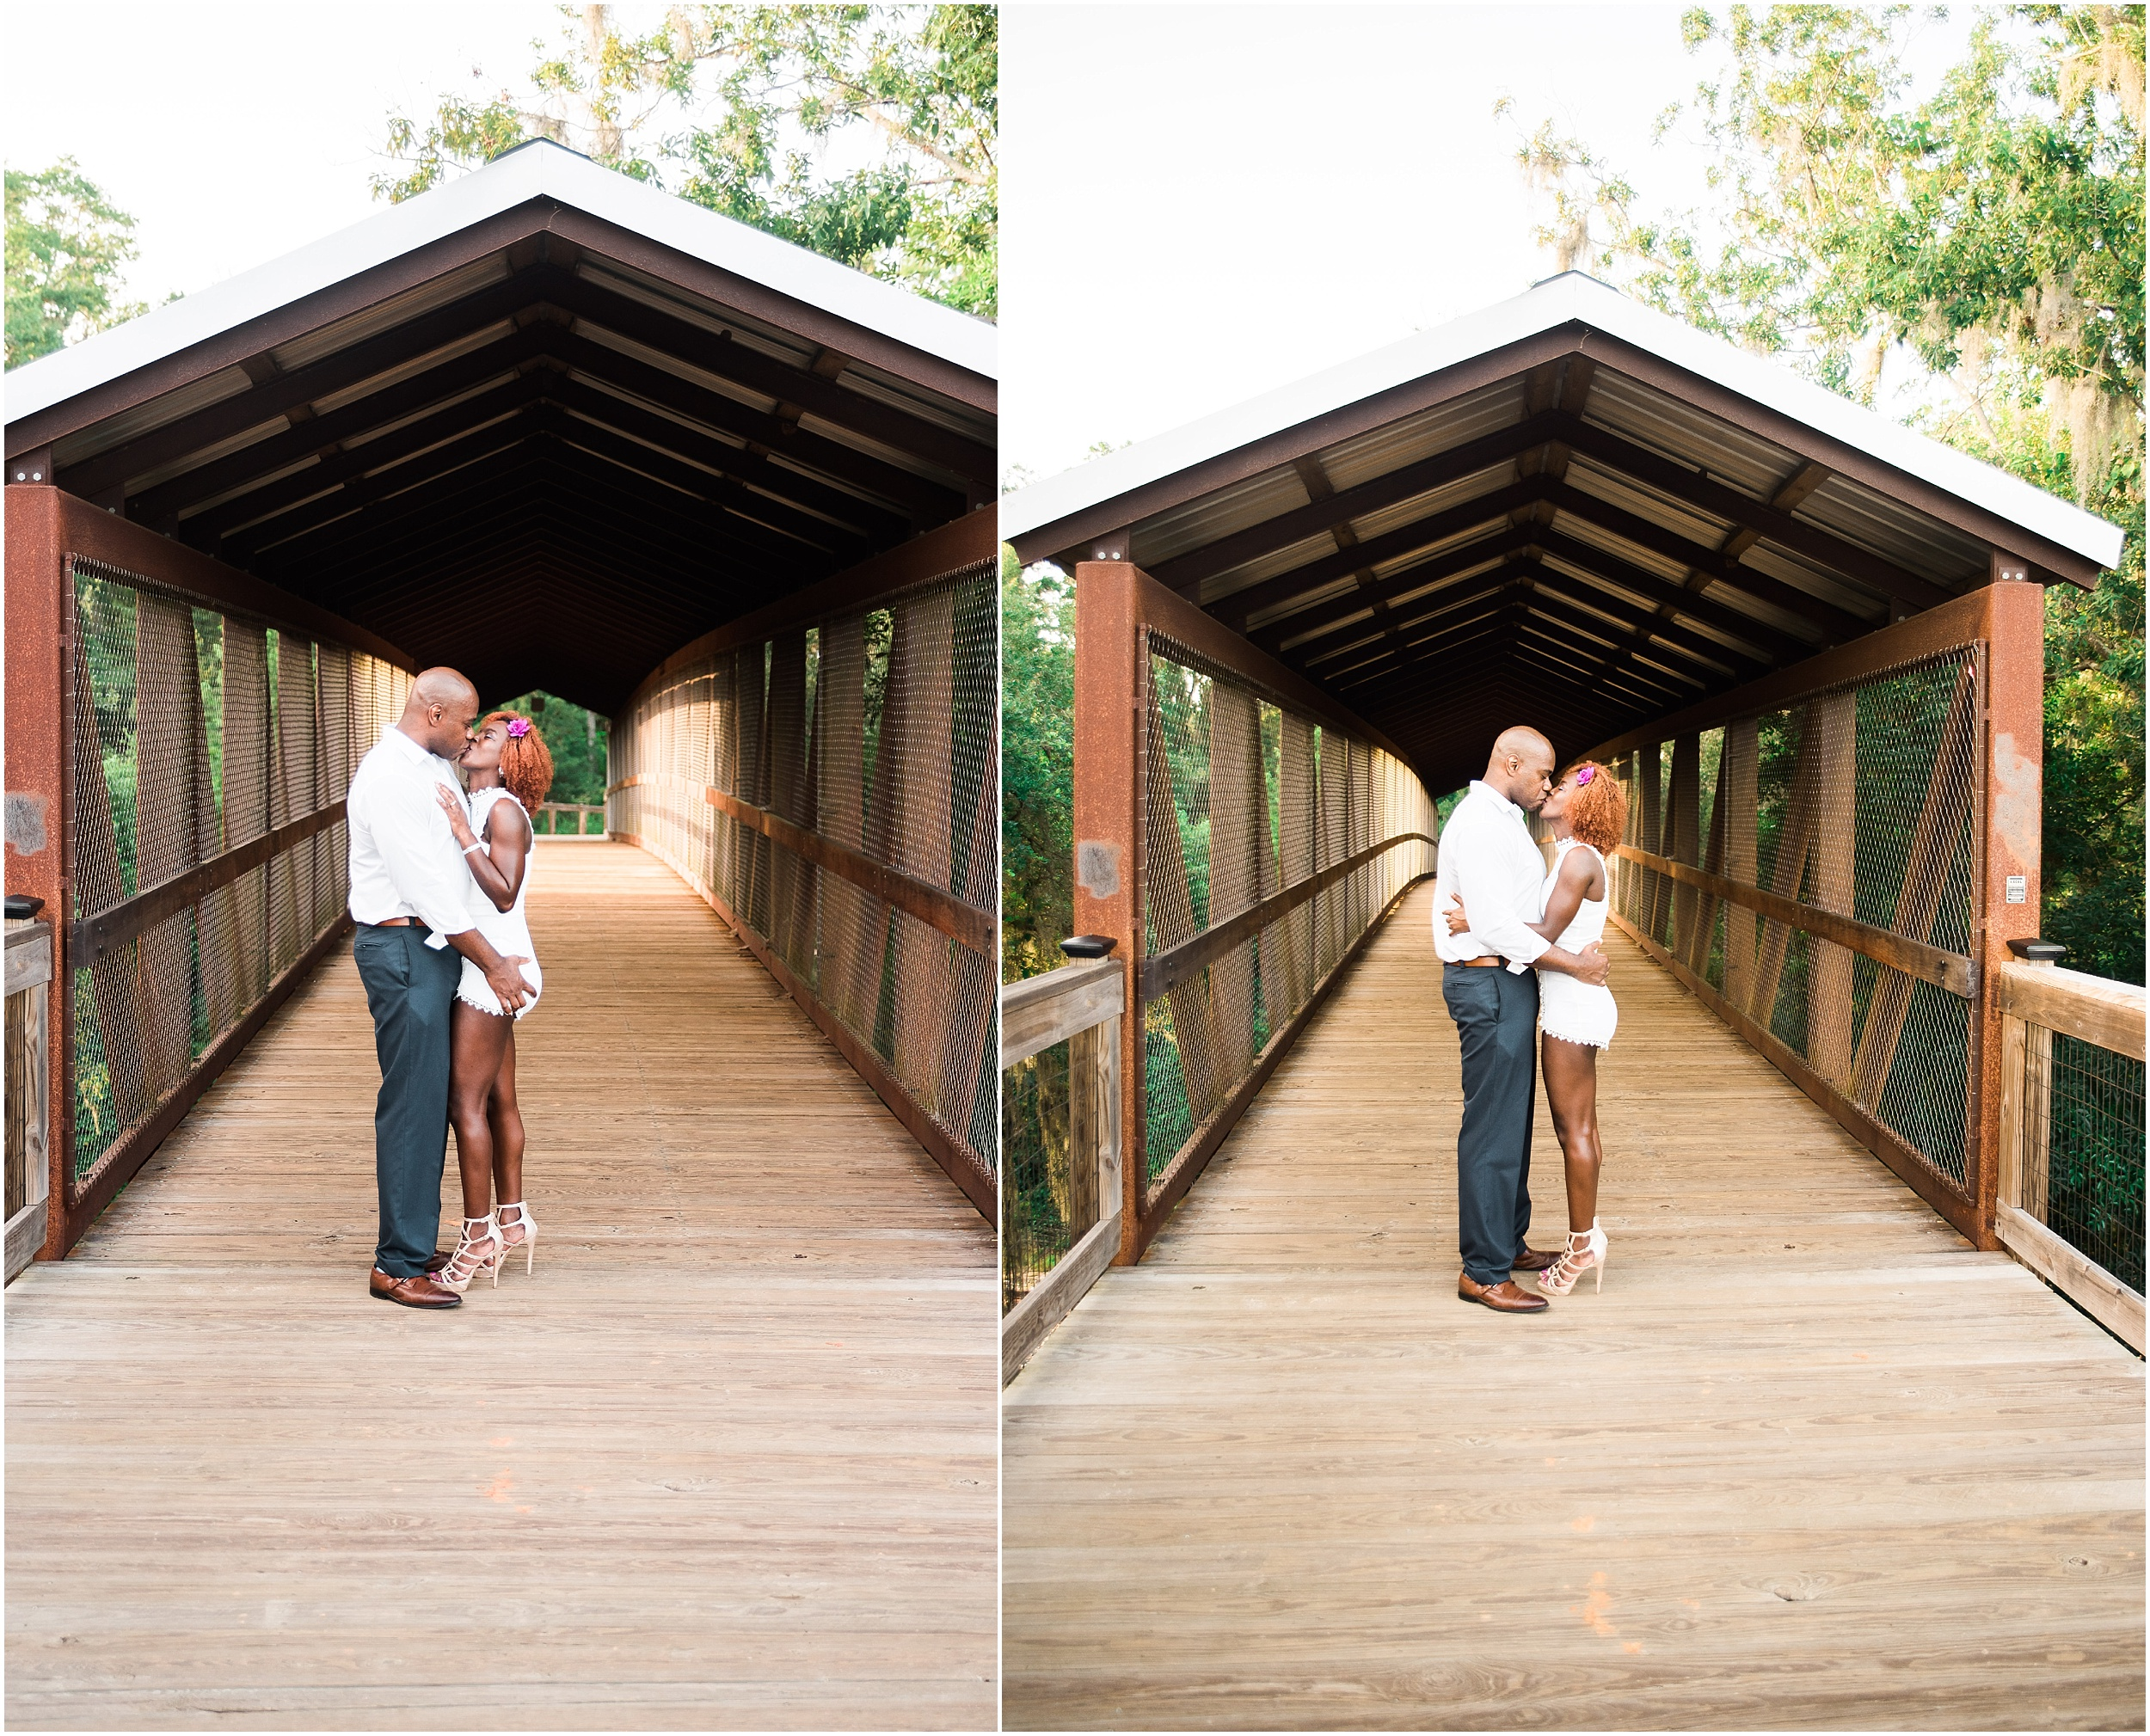 Kacy & Rolanda Vow Renewal at J.R Alford Greenway, Tallahassee FL_0010.jpg